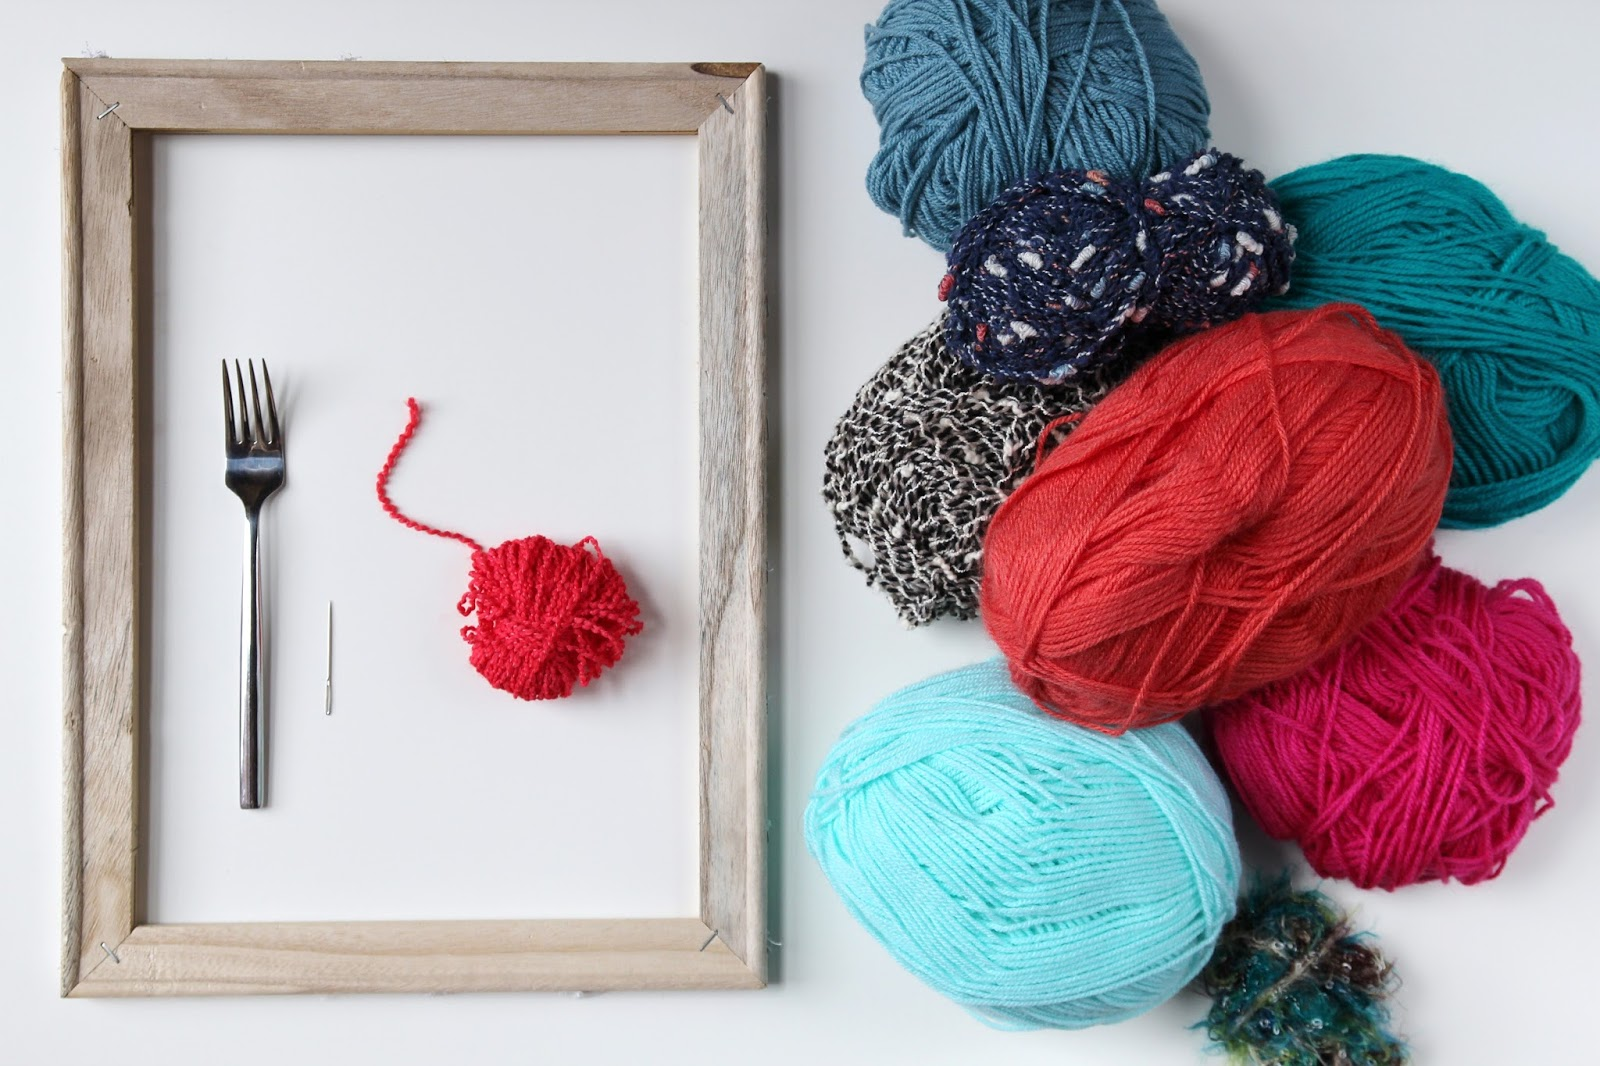 Things you'll need to make  Diy Woven Wall Hanging.